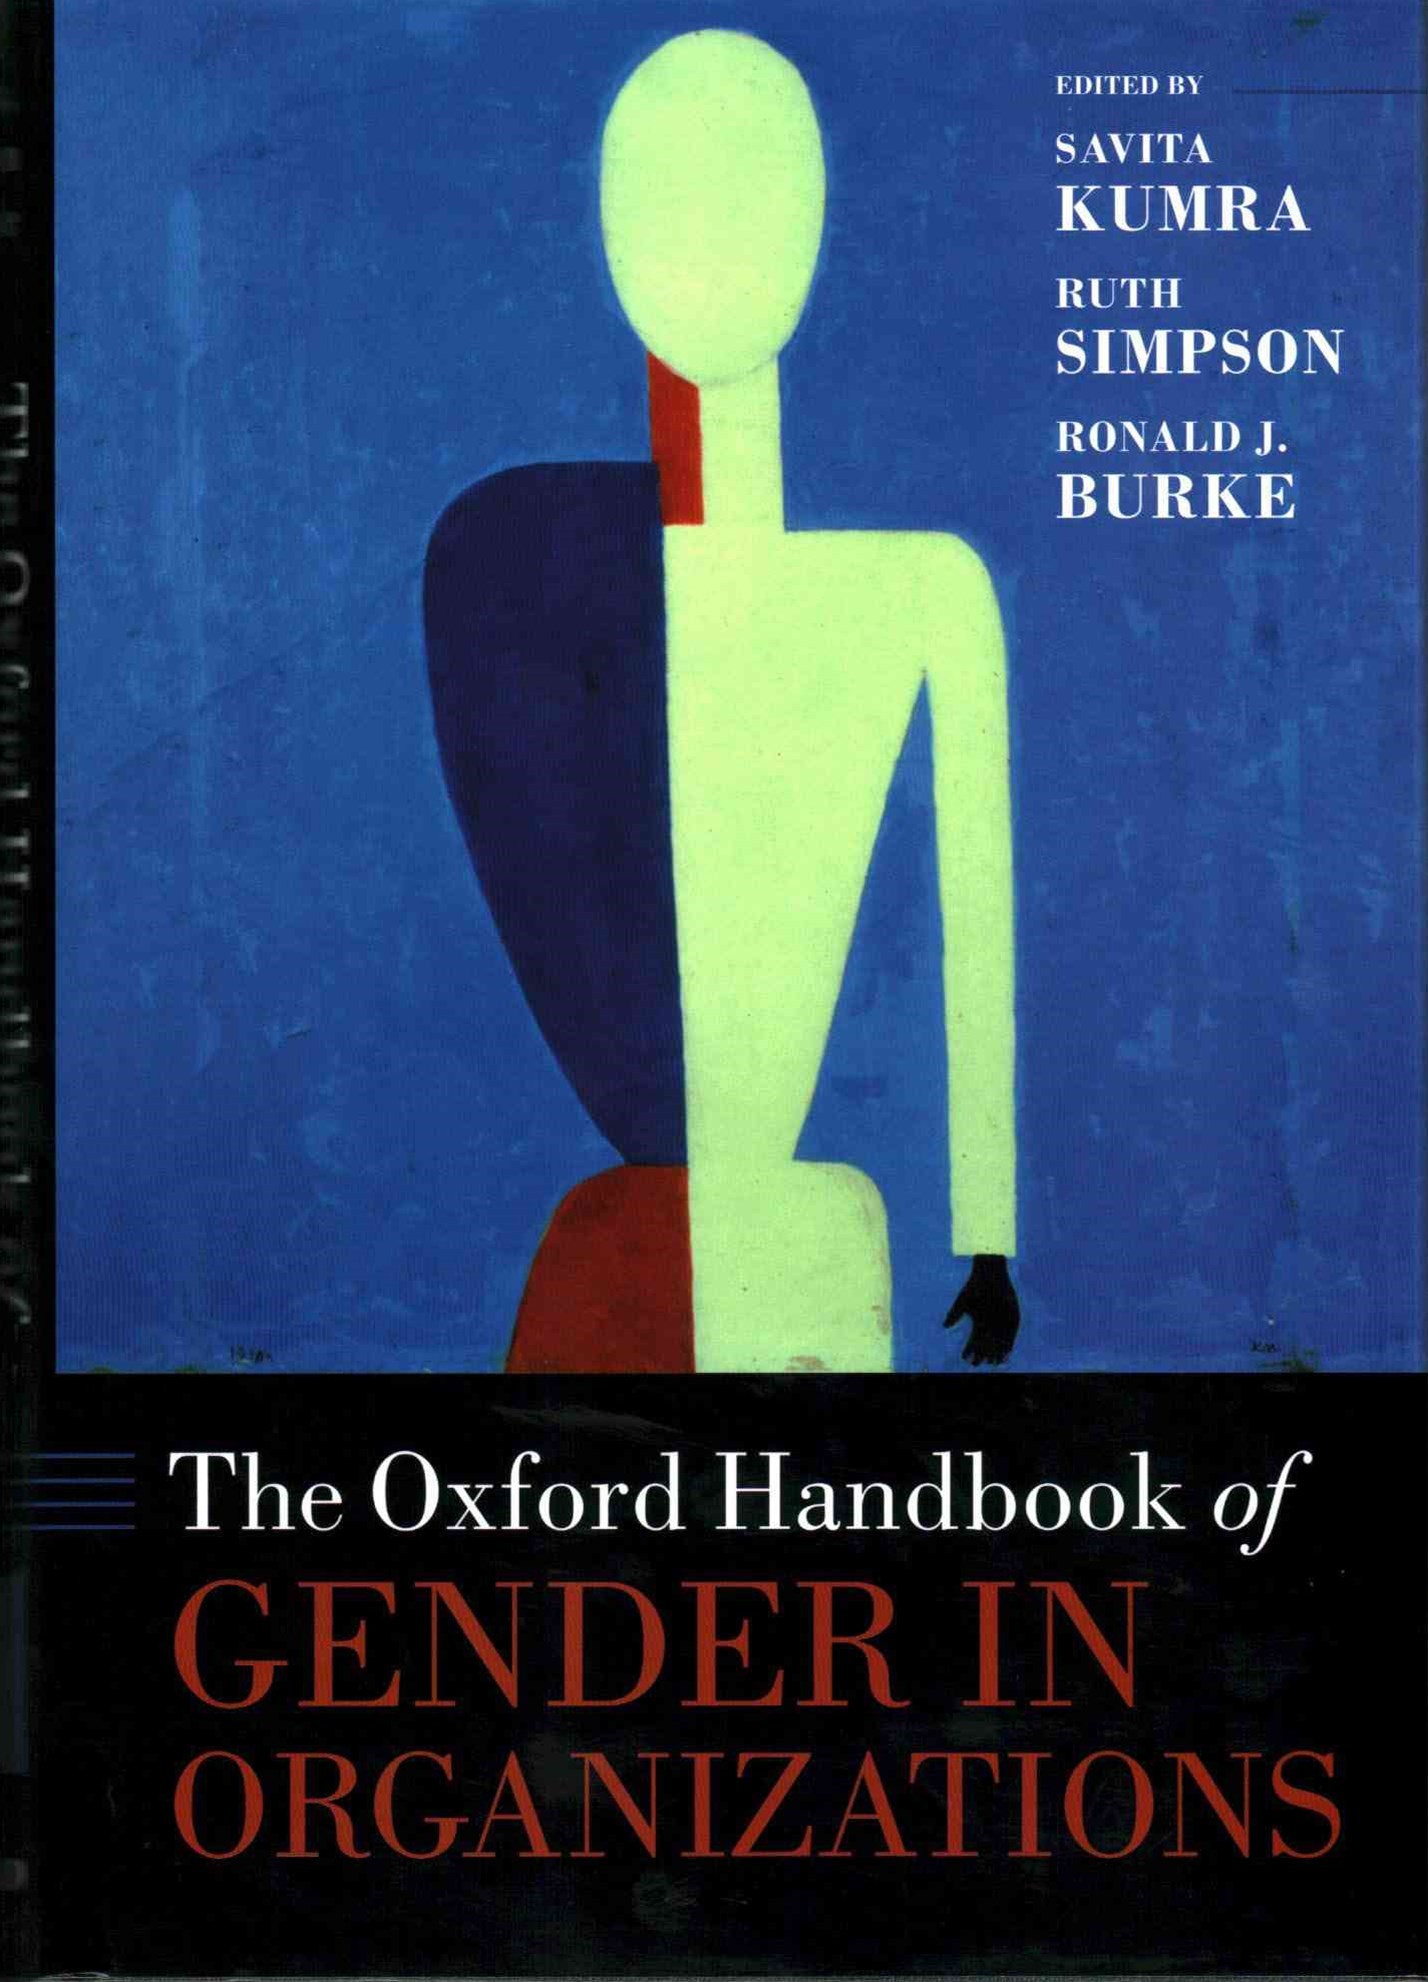 The Oxford Handbook of Gender in Organizations